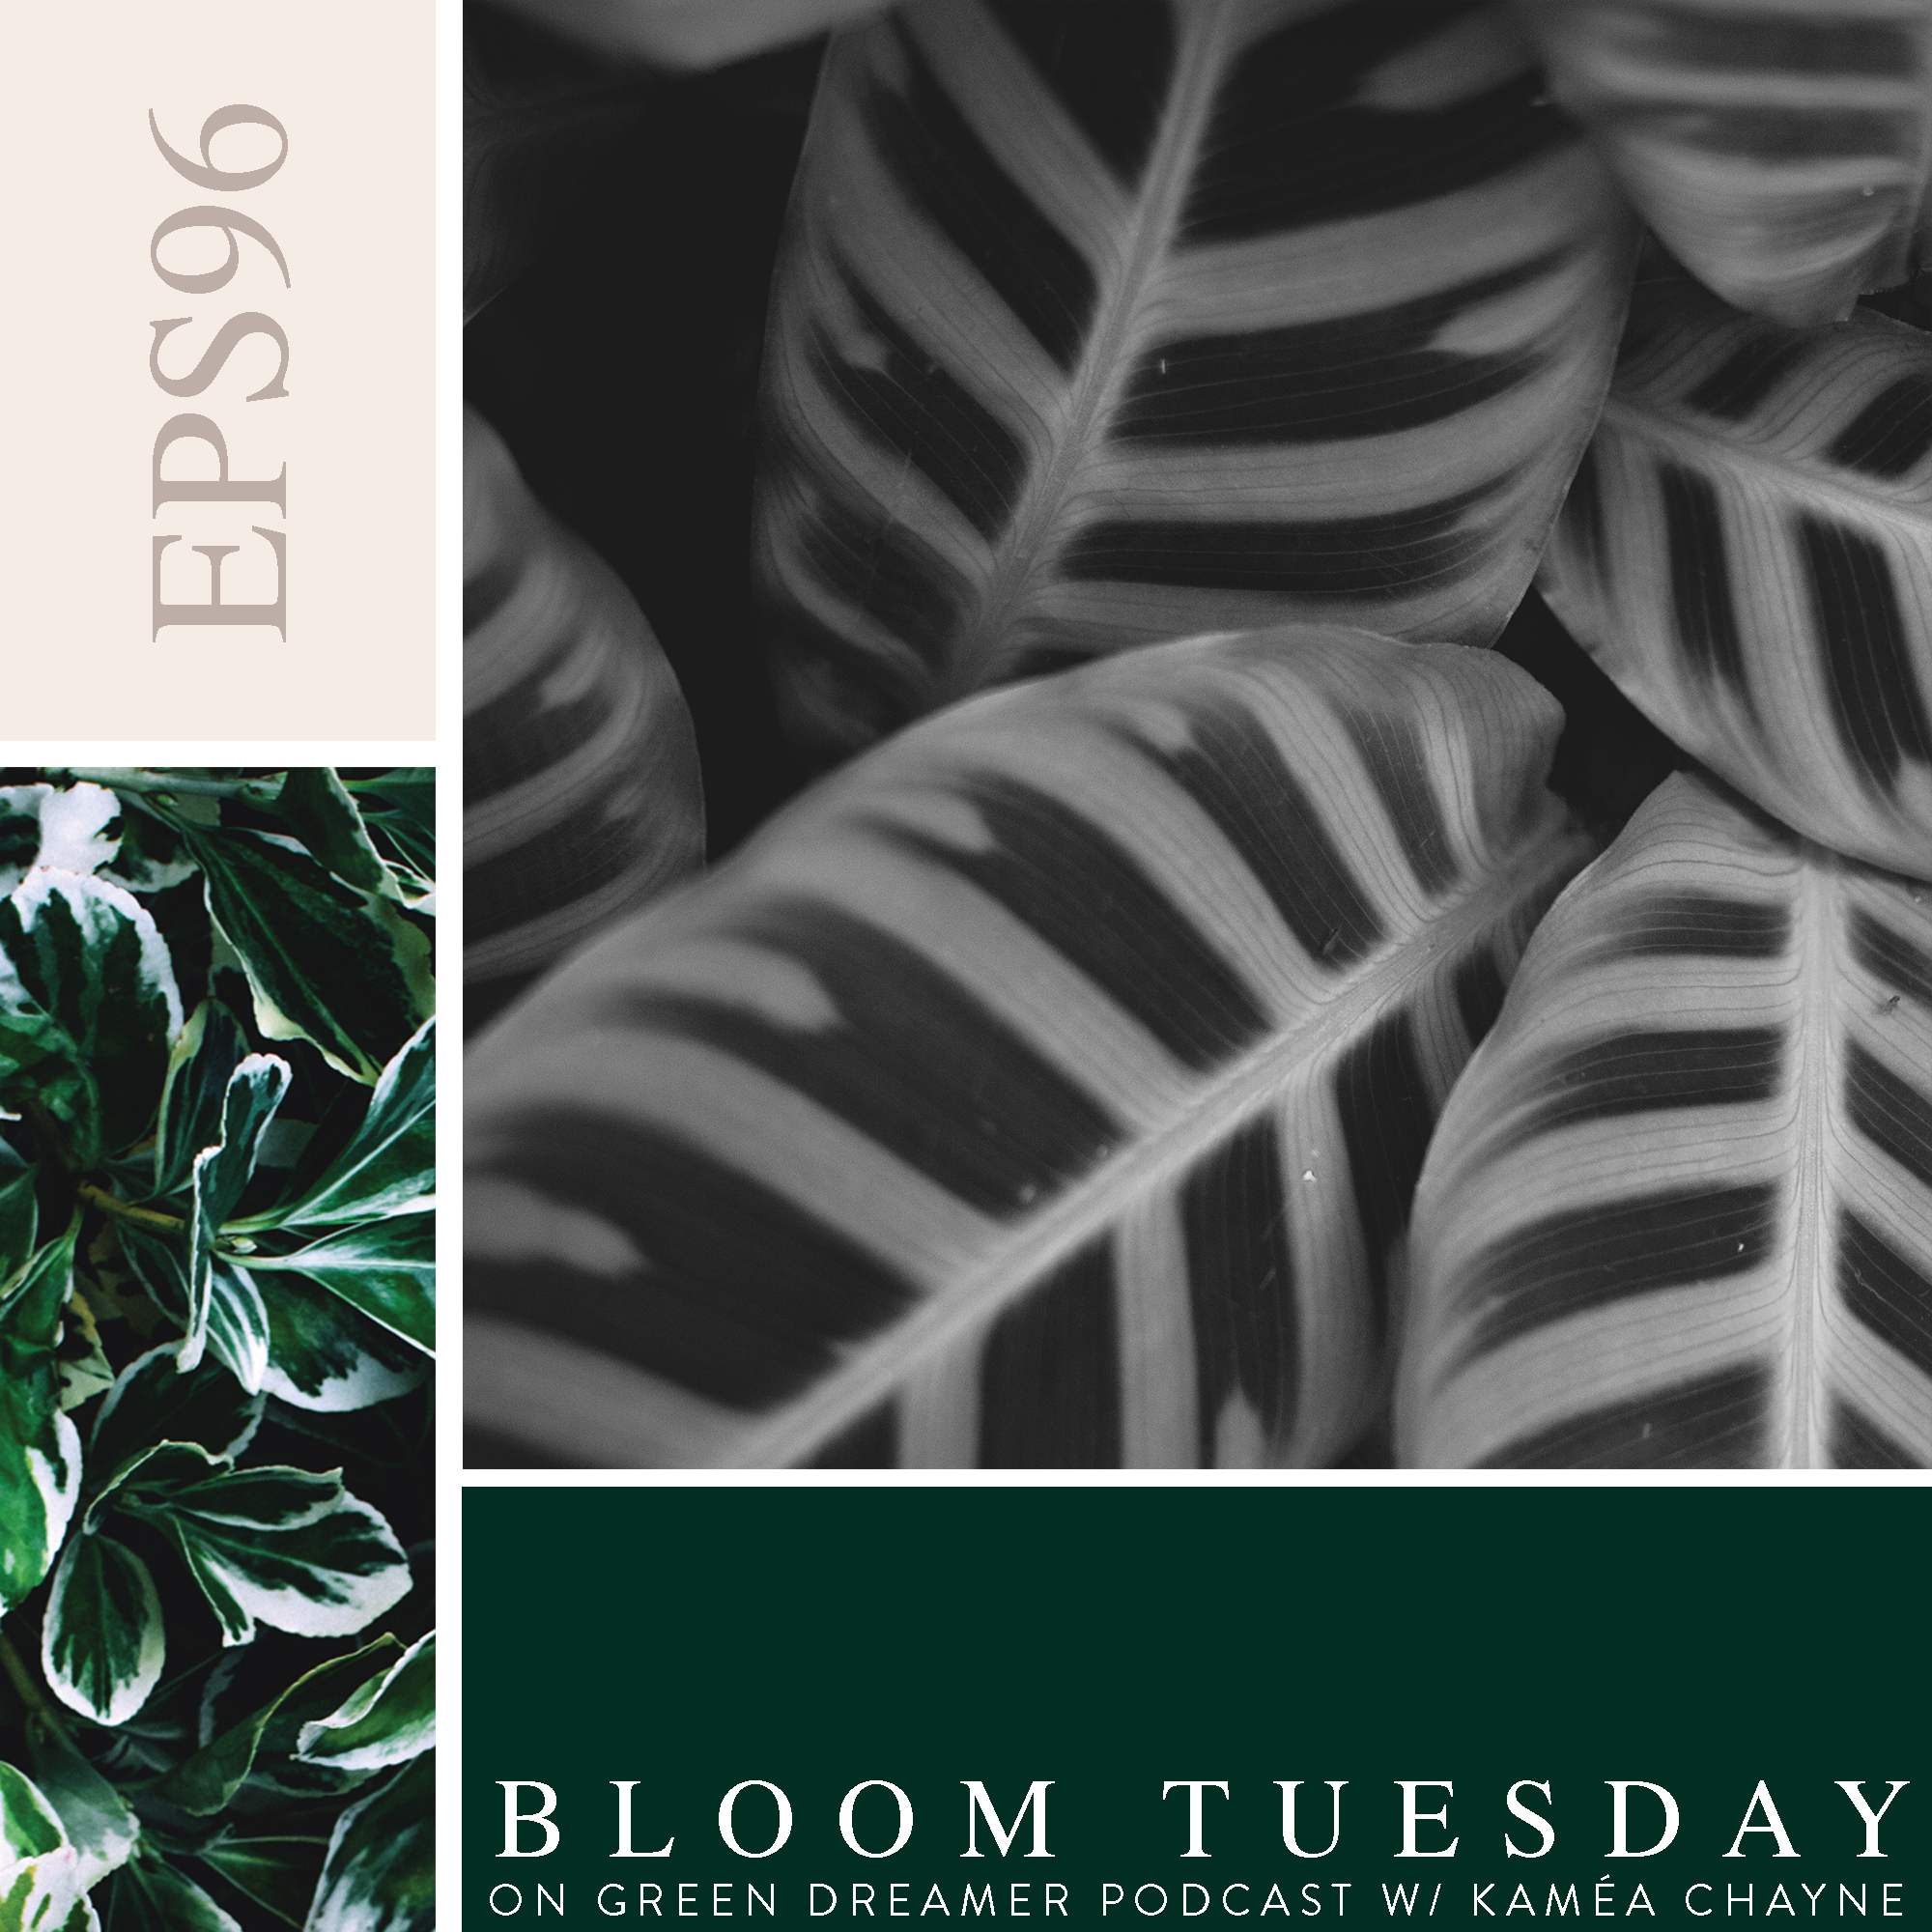 96) BLOOM TUESDAY